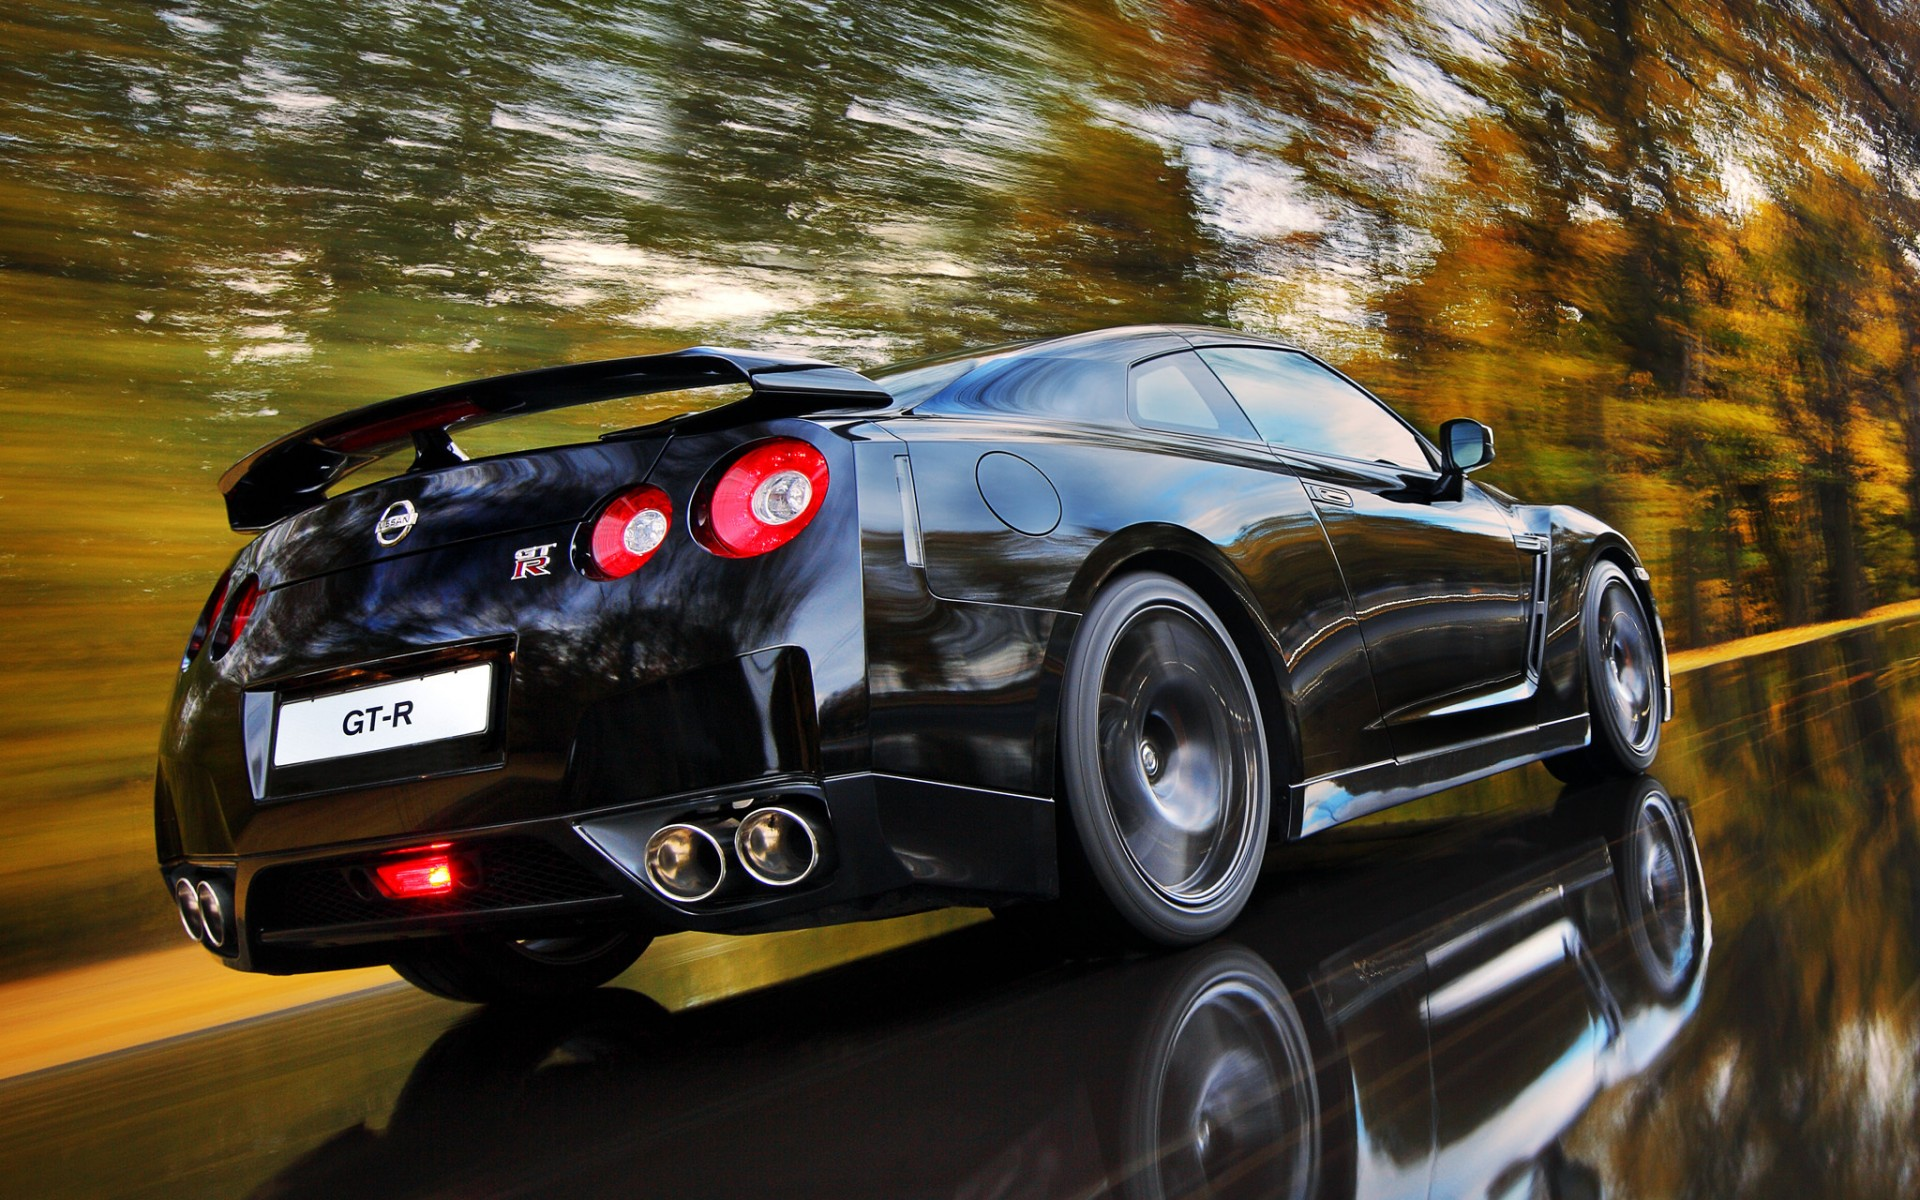 Nissan GT R wallpapers55com   Best Wallpapers for PCs Laptops 1920x1200